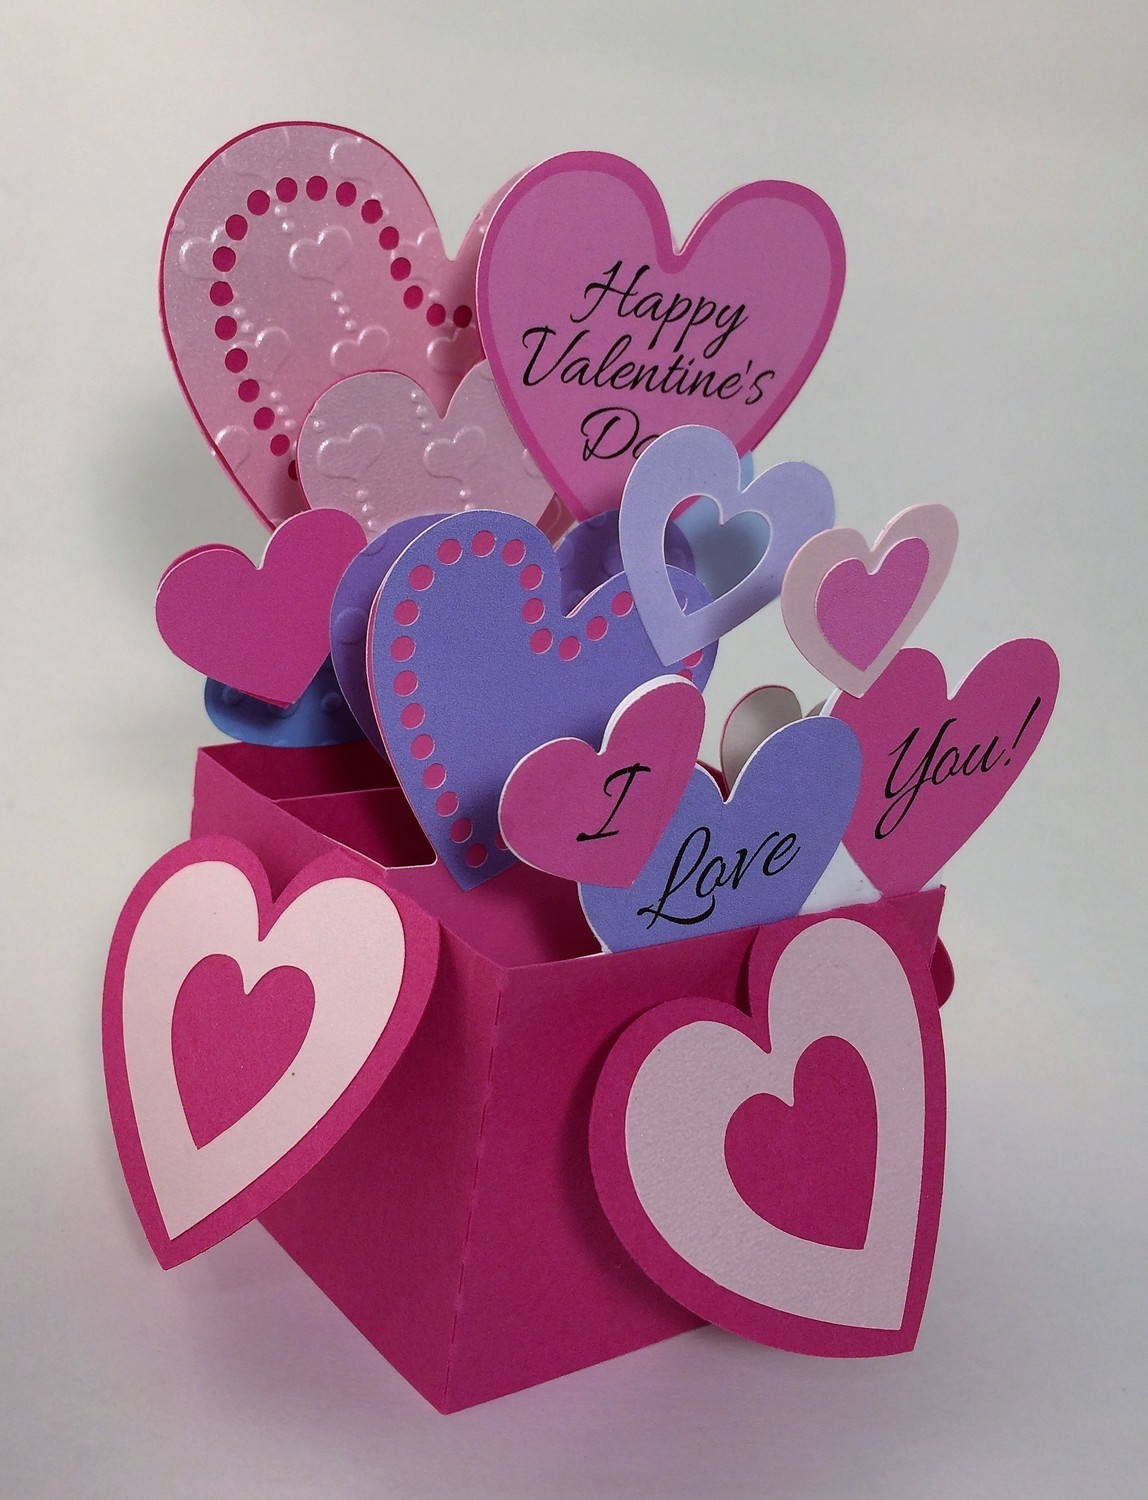 Happy Valentine's Day - Hearts Galore!